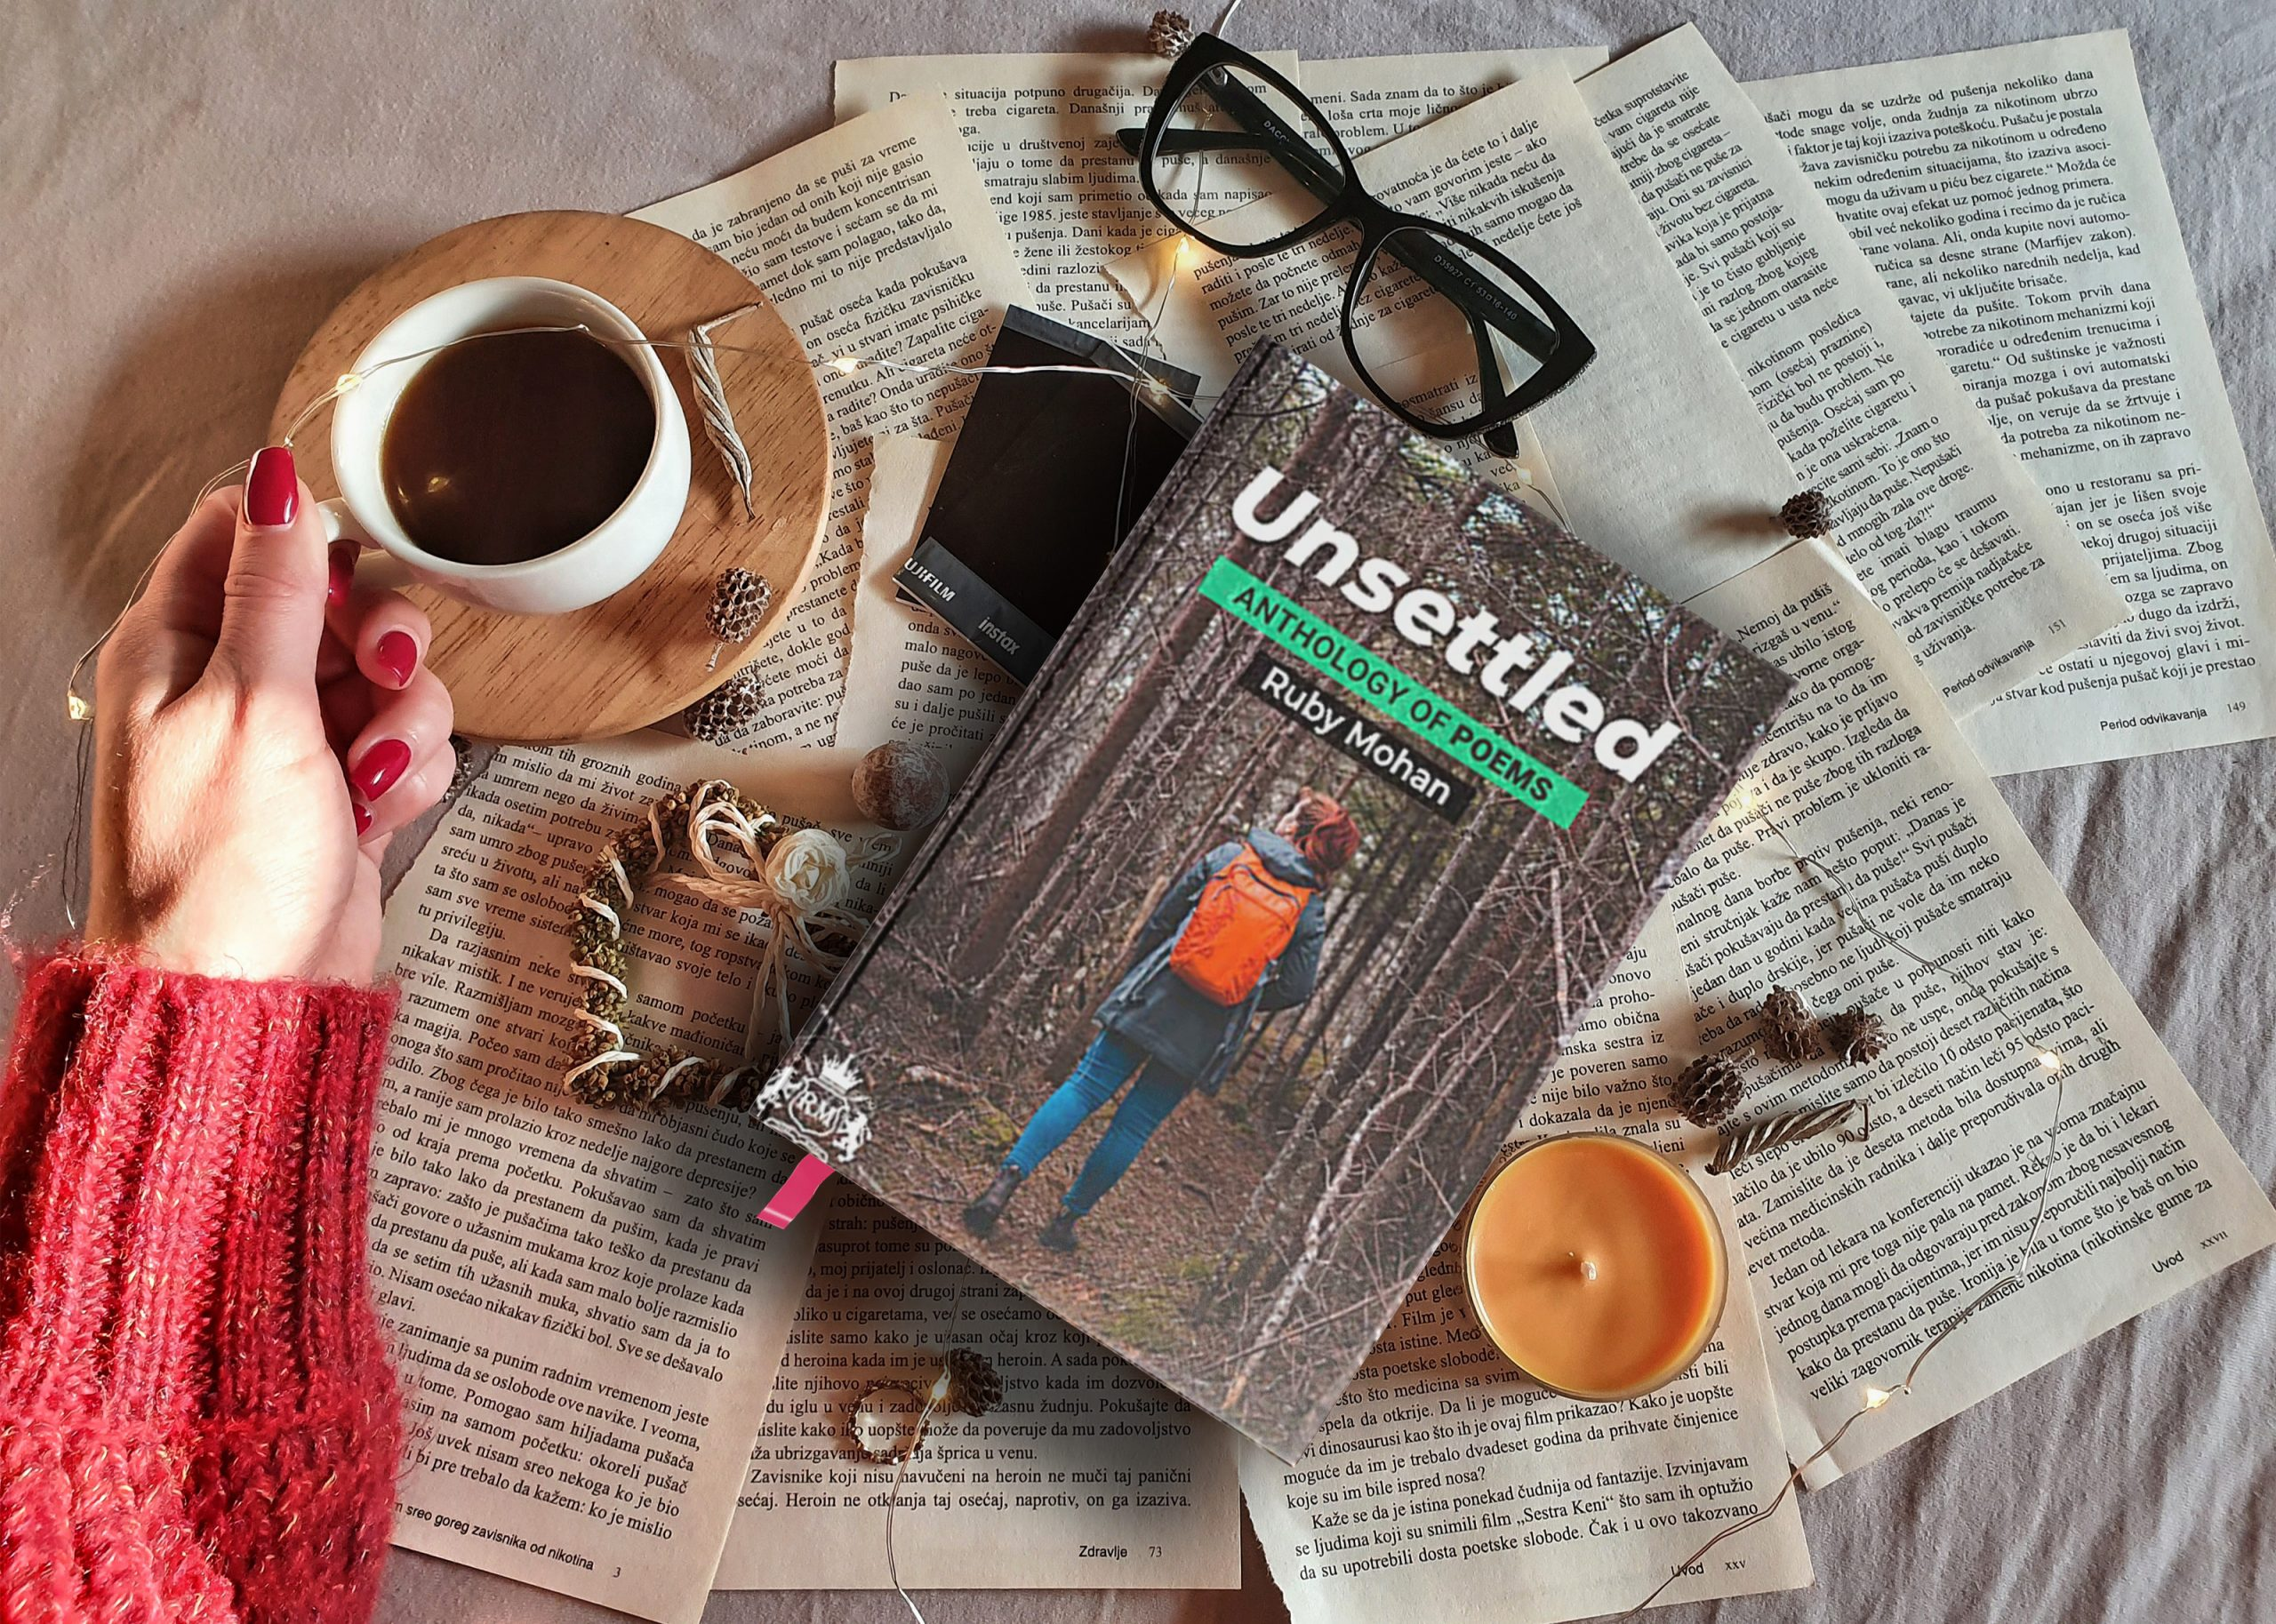 Unsettled by Ruby Mohan